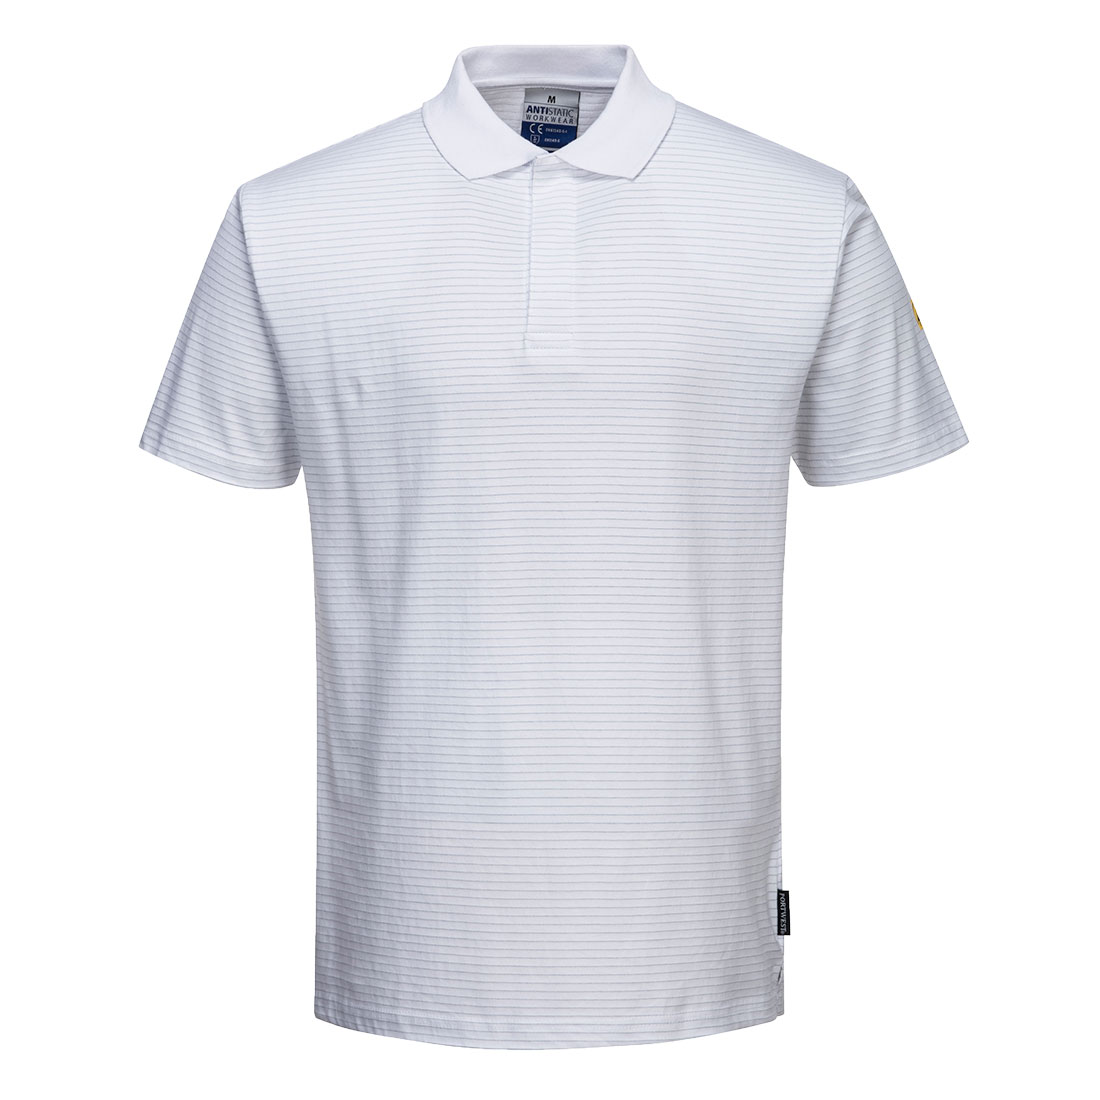 Antistatik ESD Polo-Shirt